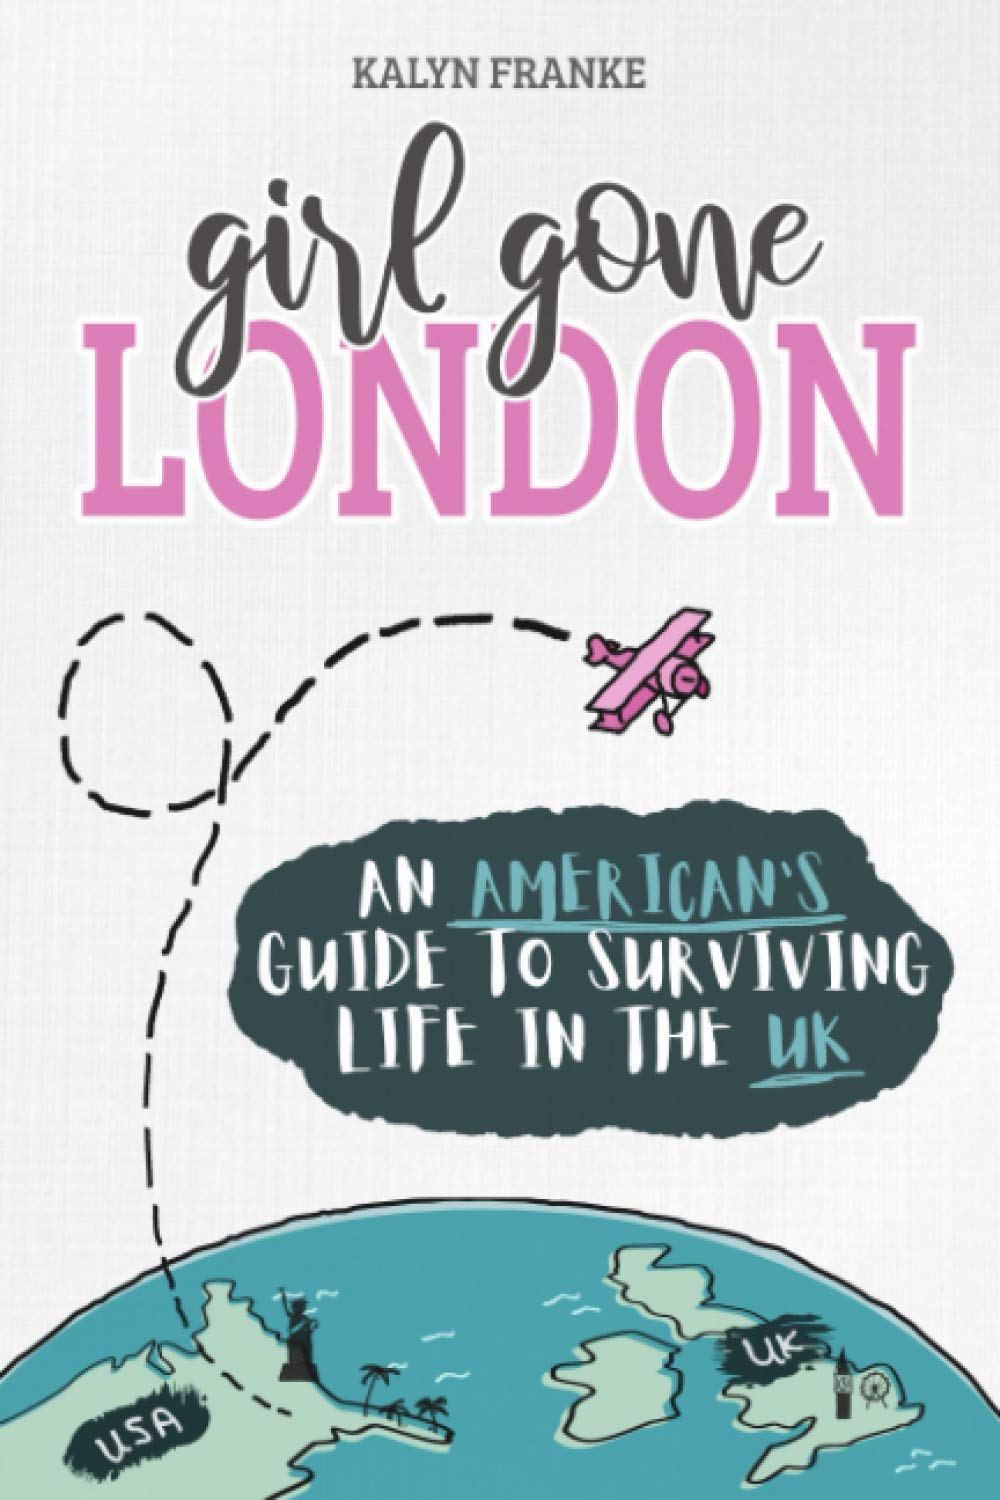 Girl Gone London: An American's Guide to Surviving Life in the UK